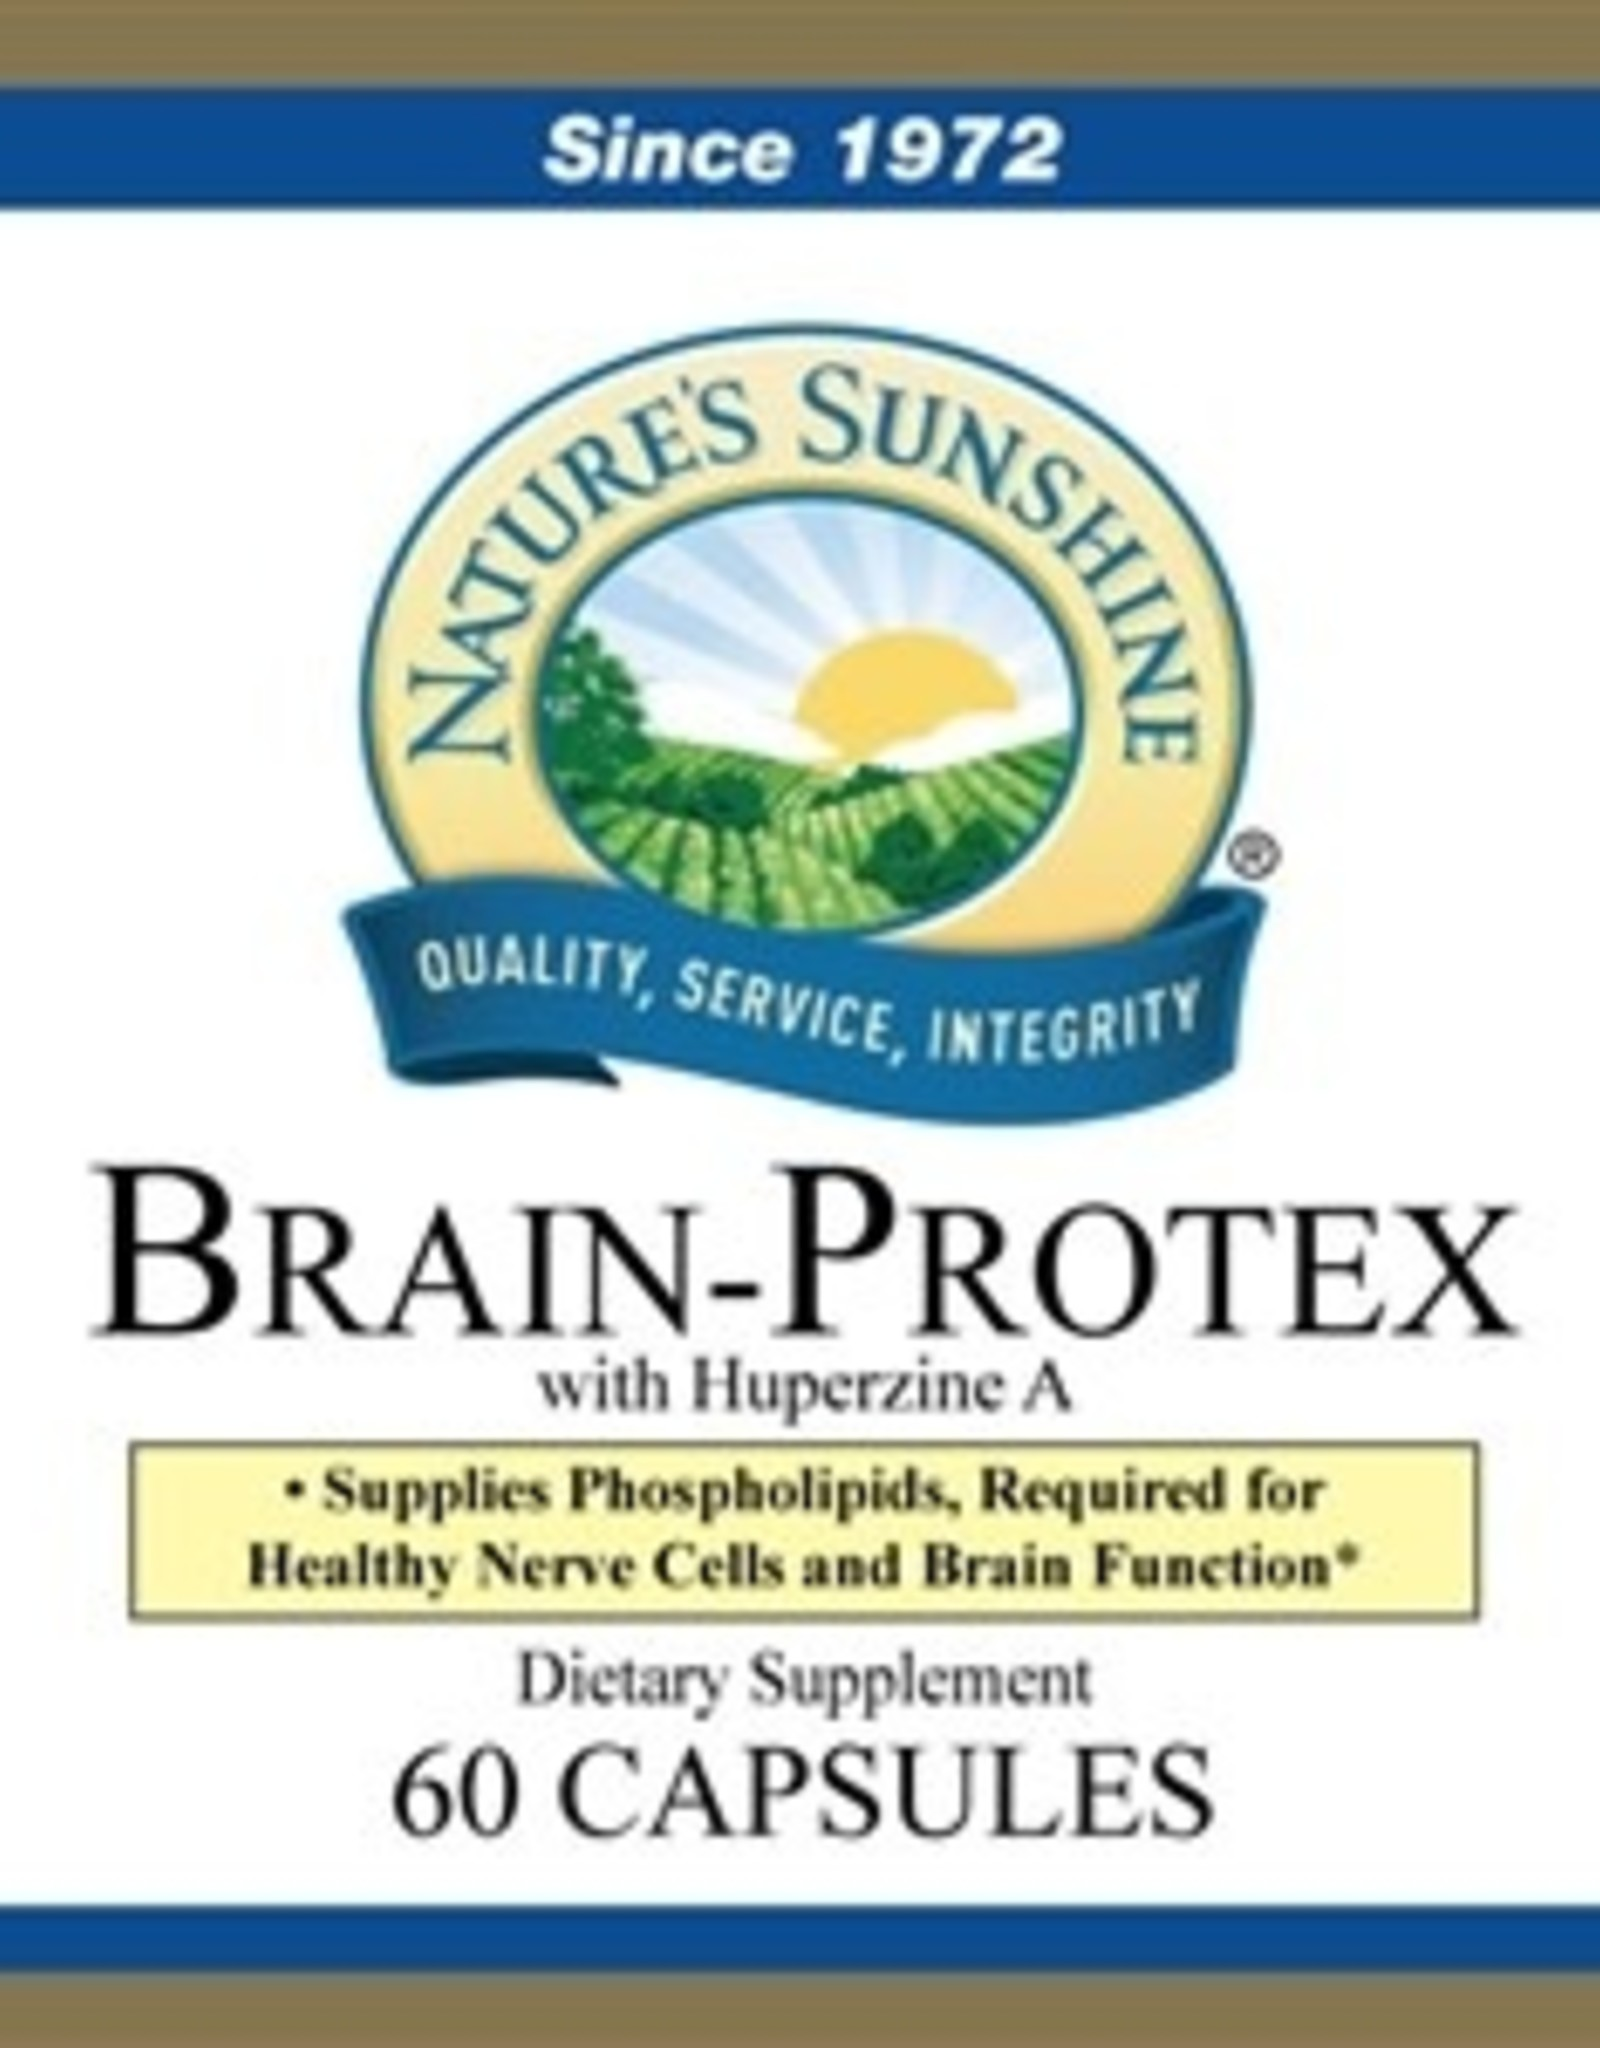 Nature's Sunshine Brain Protex w/Huperzine A (60 caps)